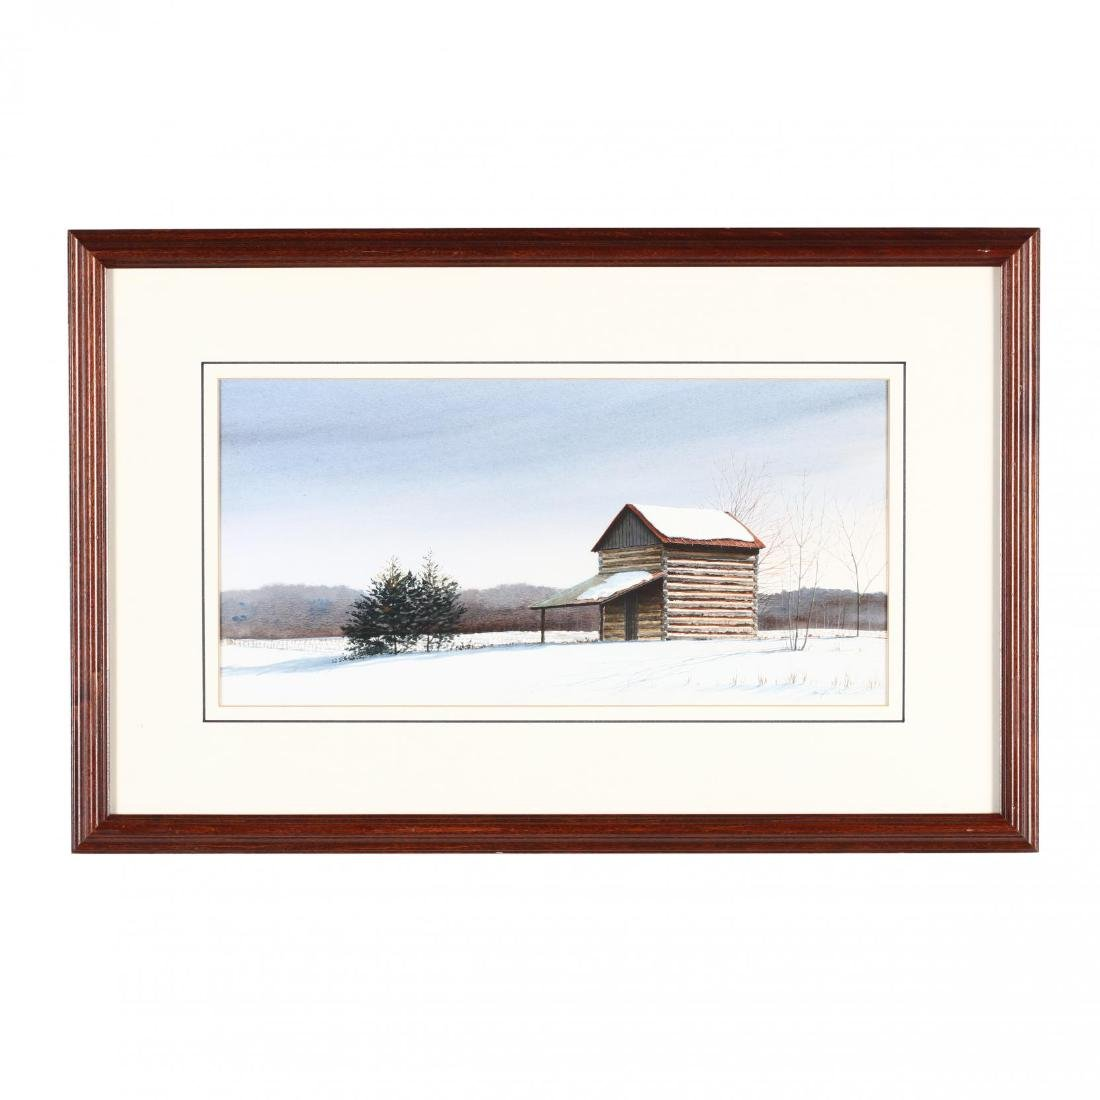 Douglas Cave (NC), Winter Landscape with Tobacco Barn